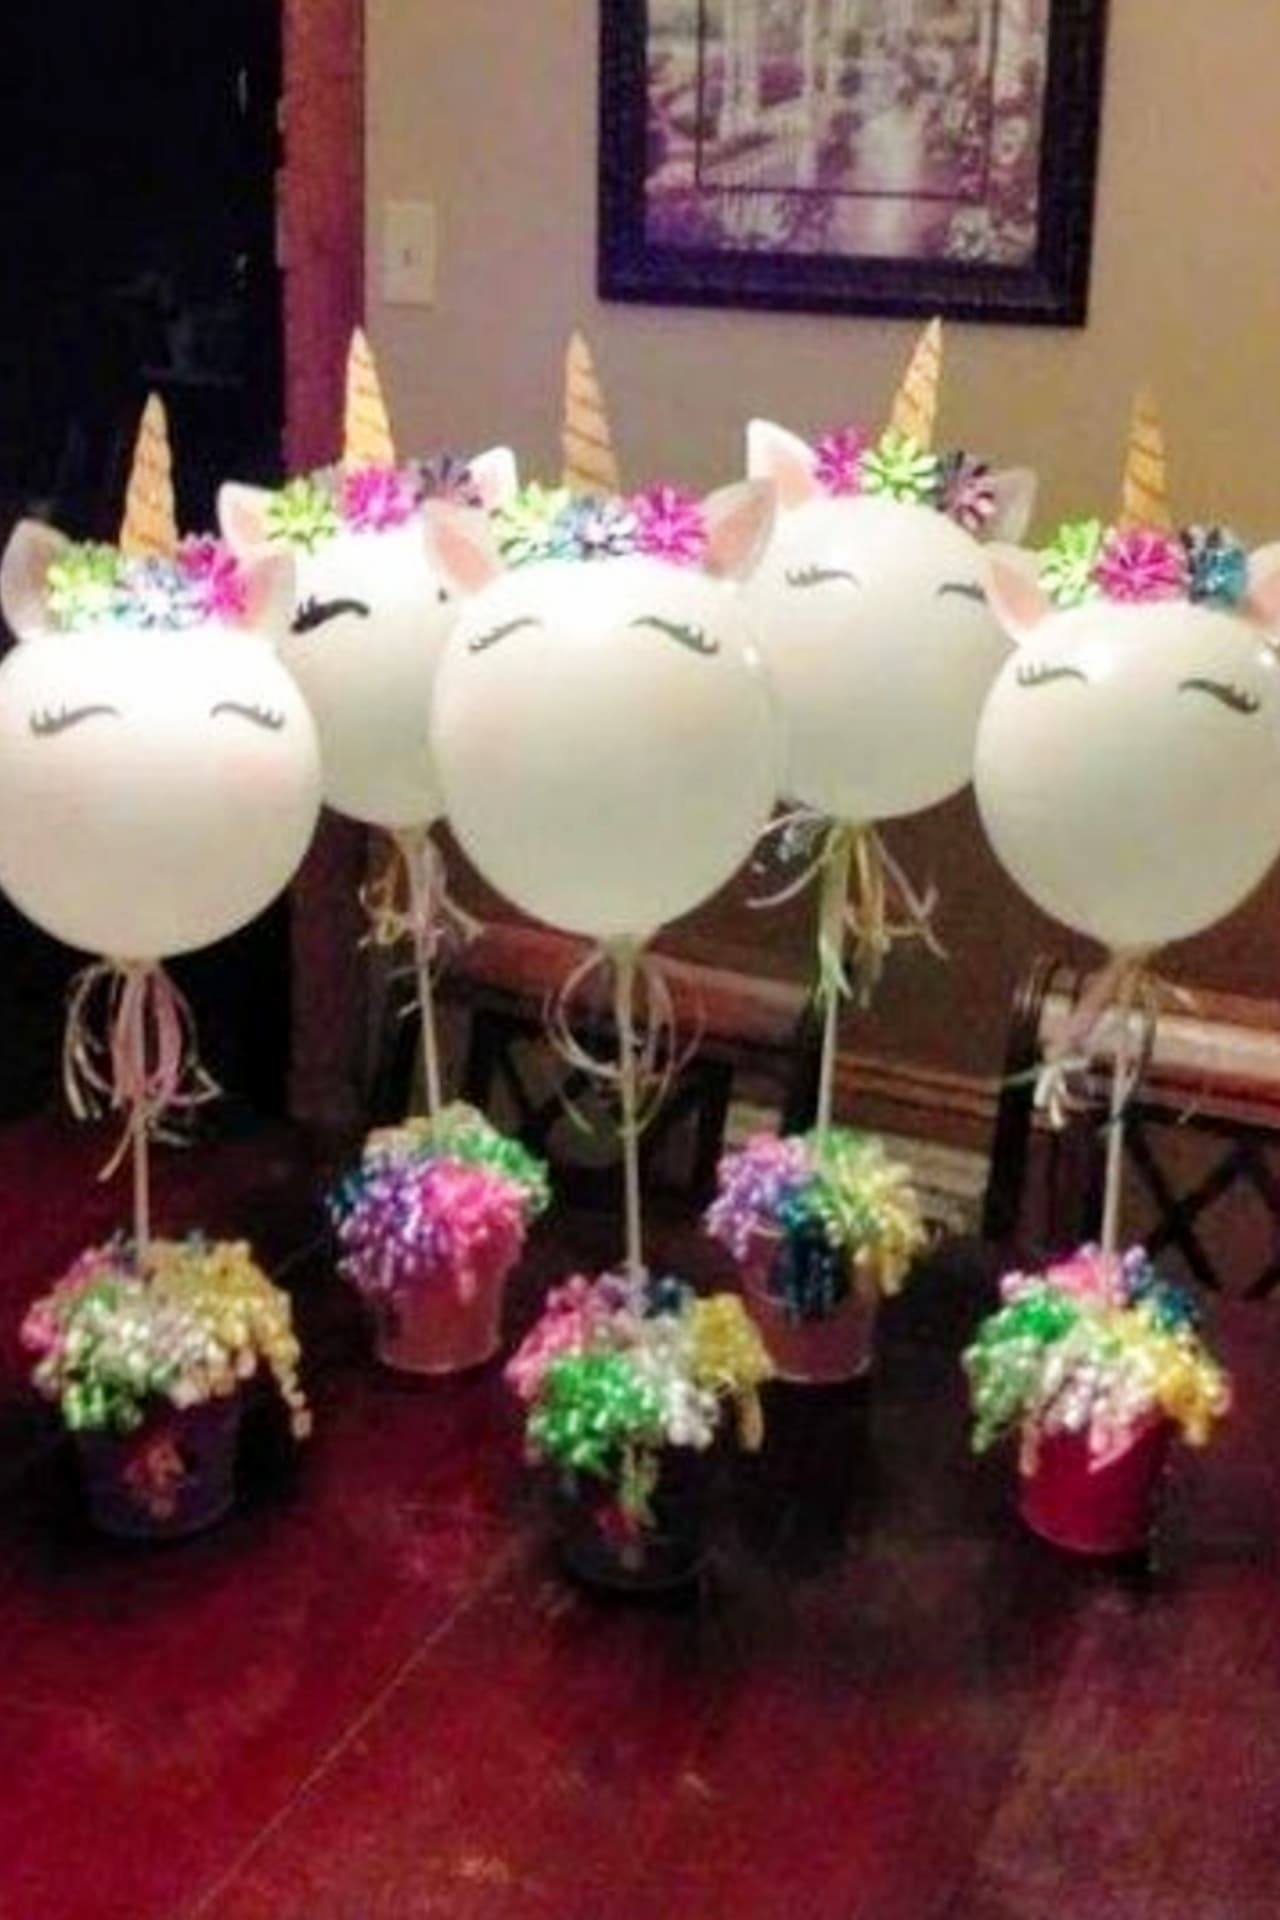 Unicorn birthday party ideas and unicorn crafts for kids - unicorn party centerpieces with balloons - would also be cute DIY unicorn birthday goody bags